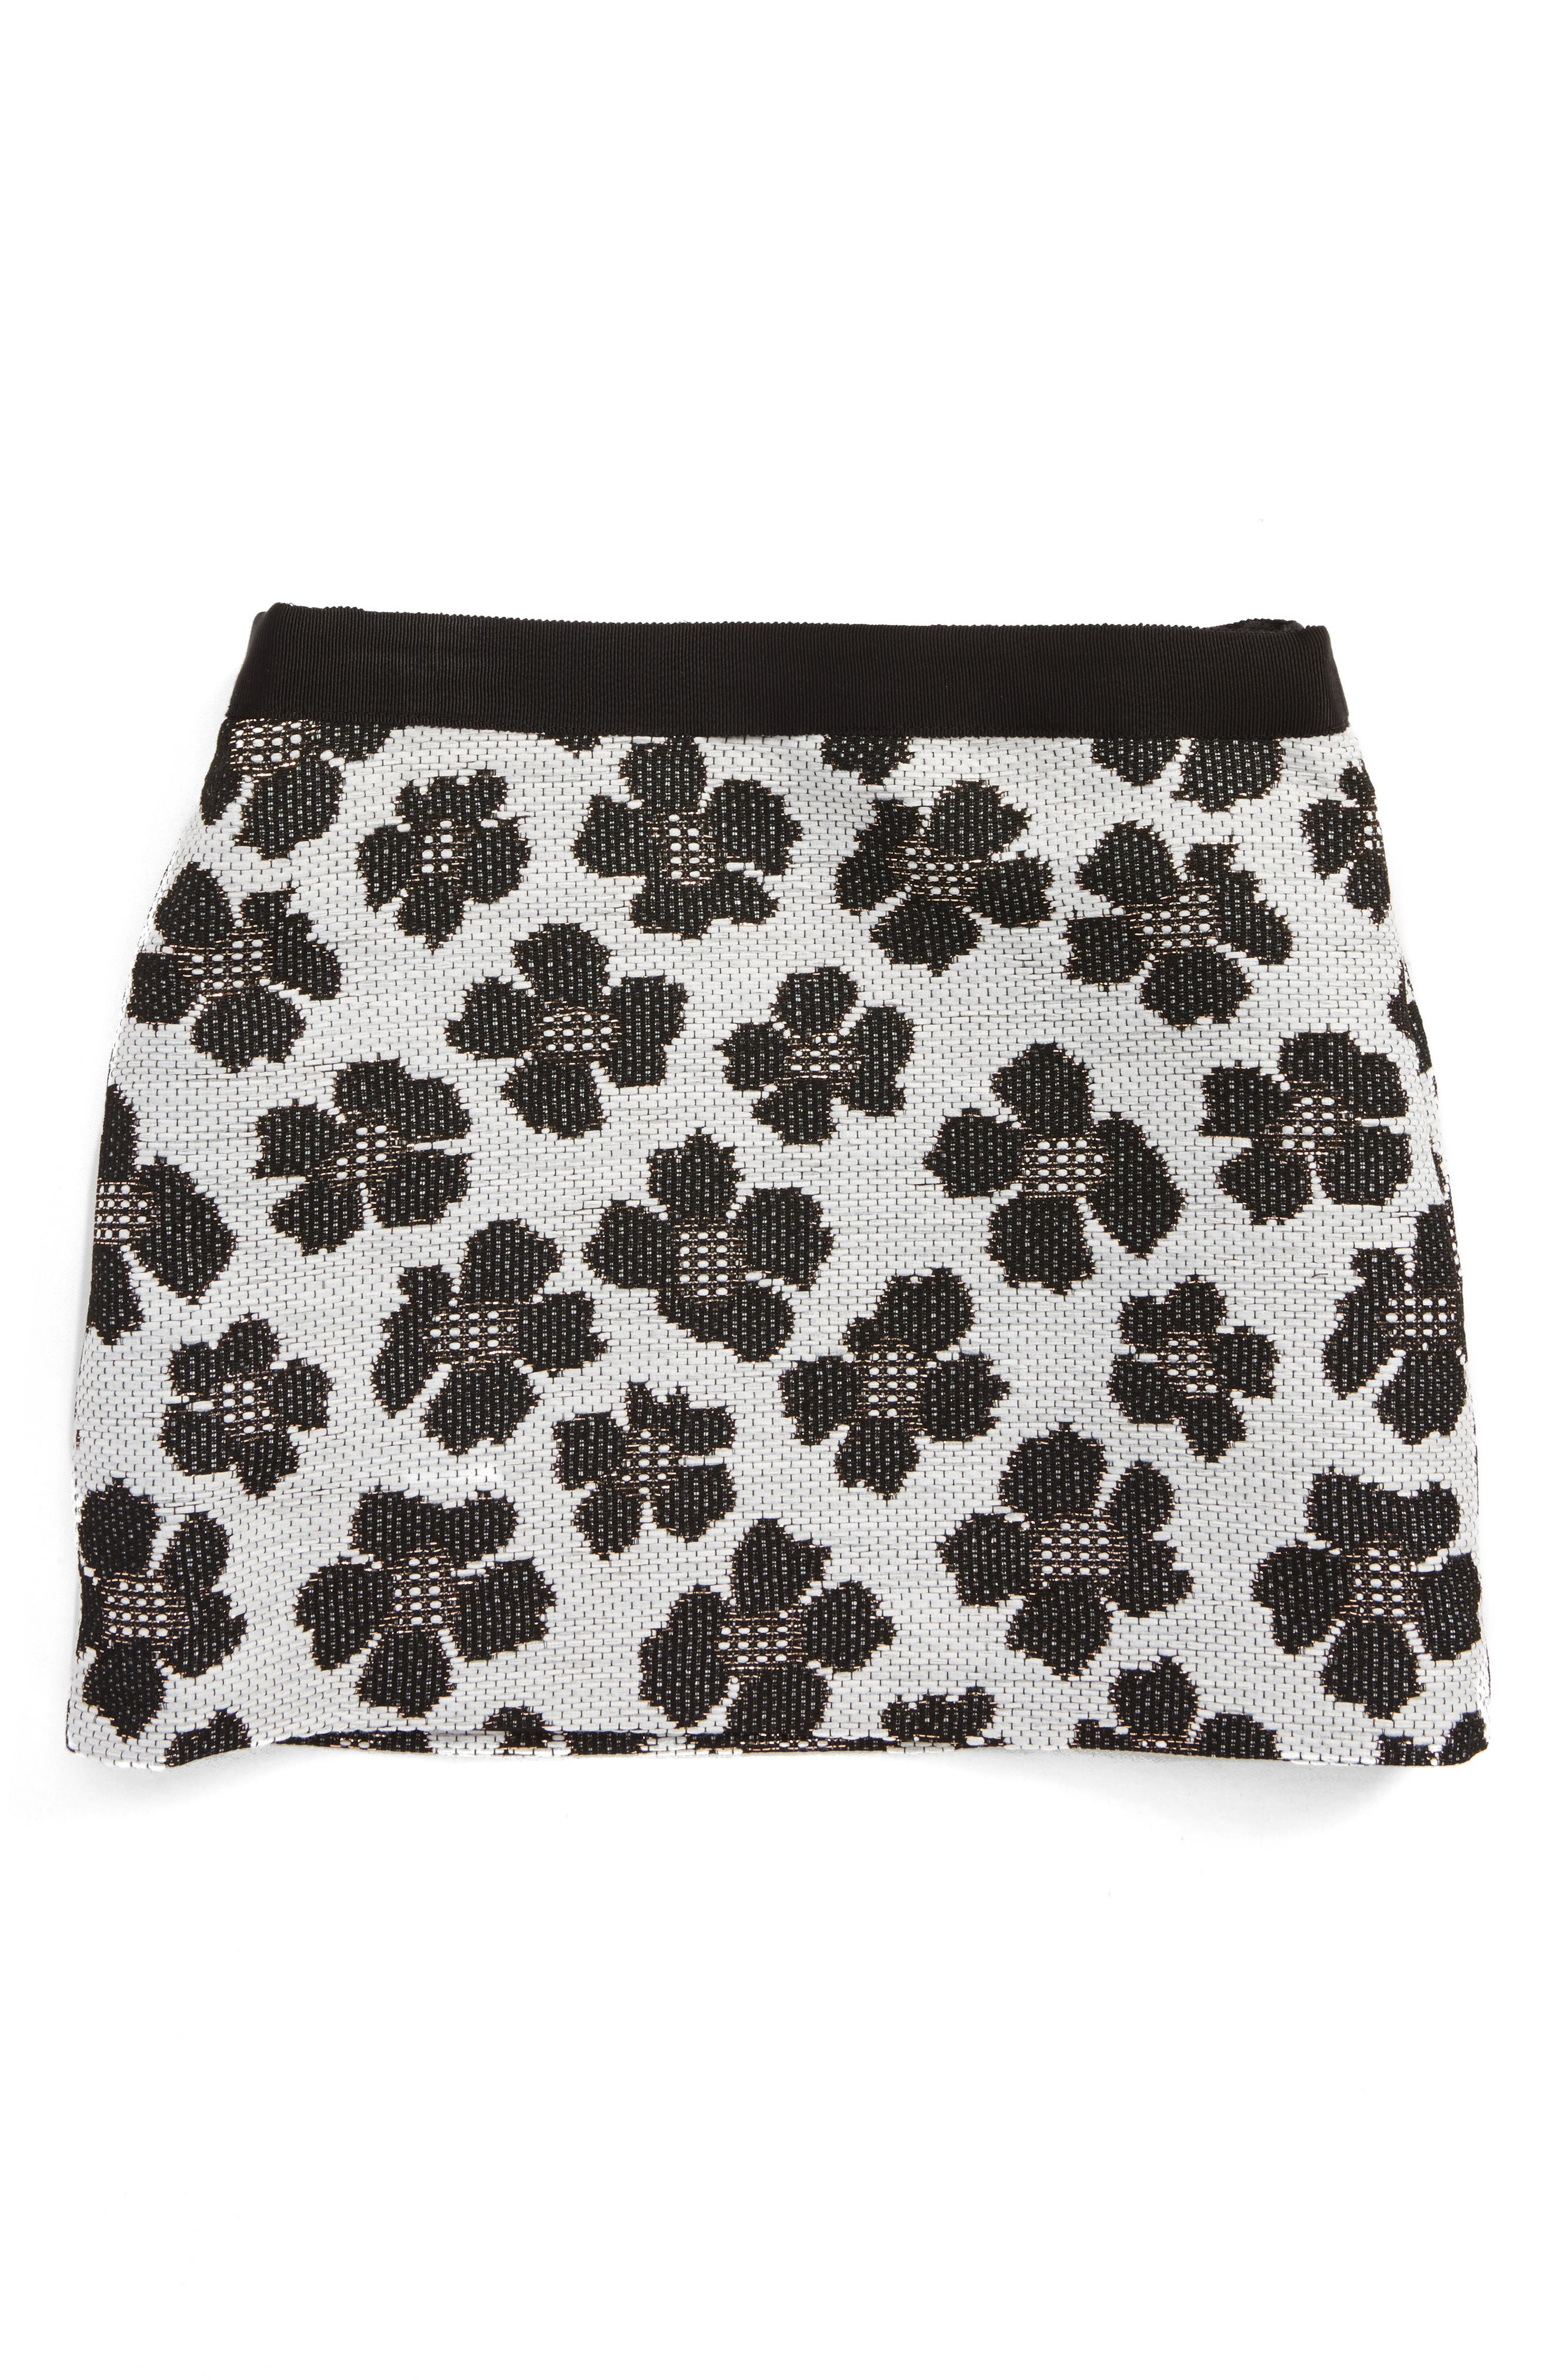 Milly Minis Metallic Jacquard Miniskirt (Big Girls)